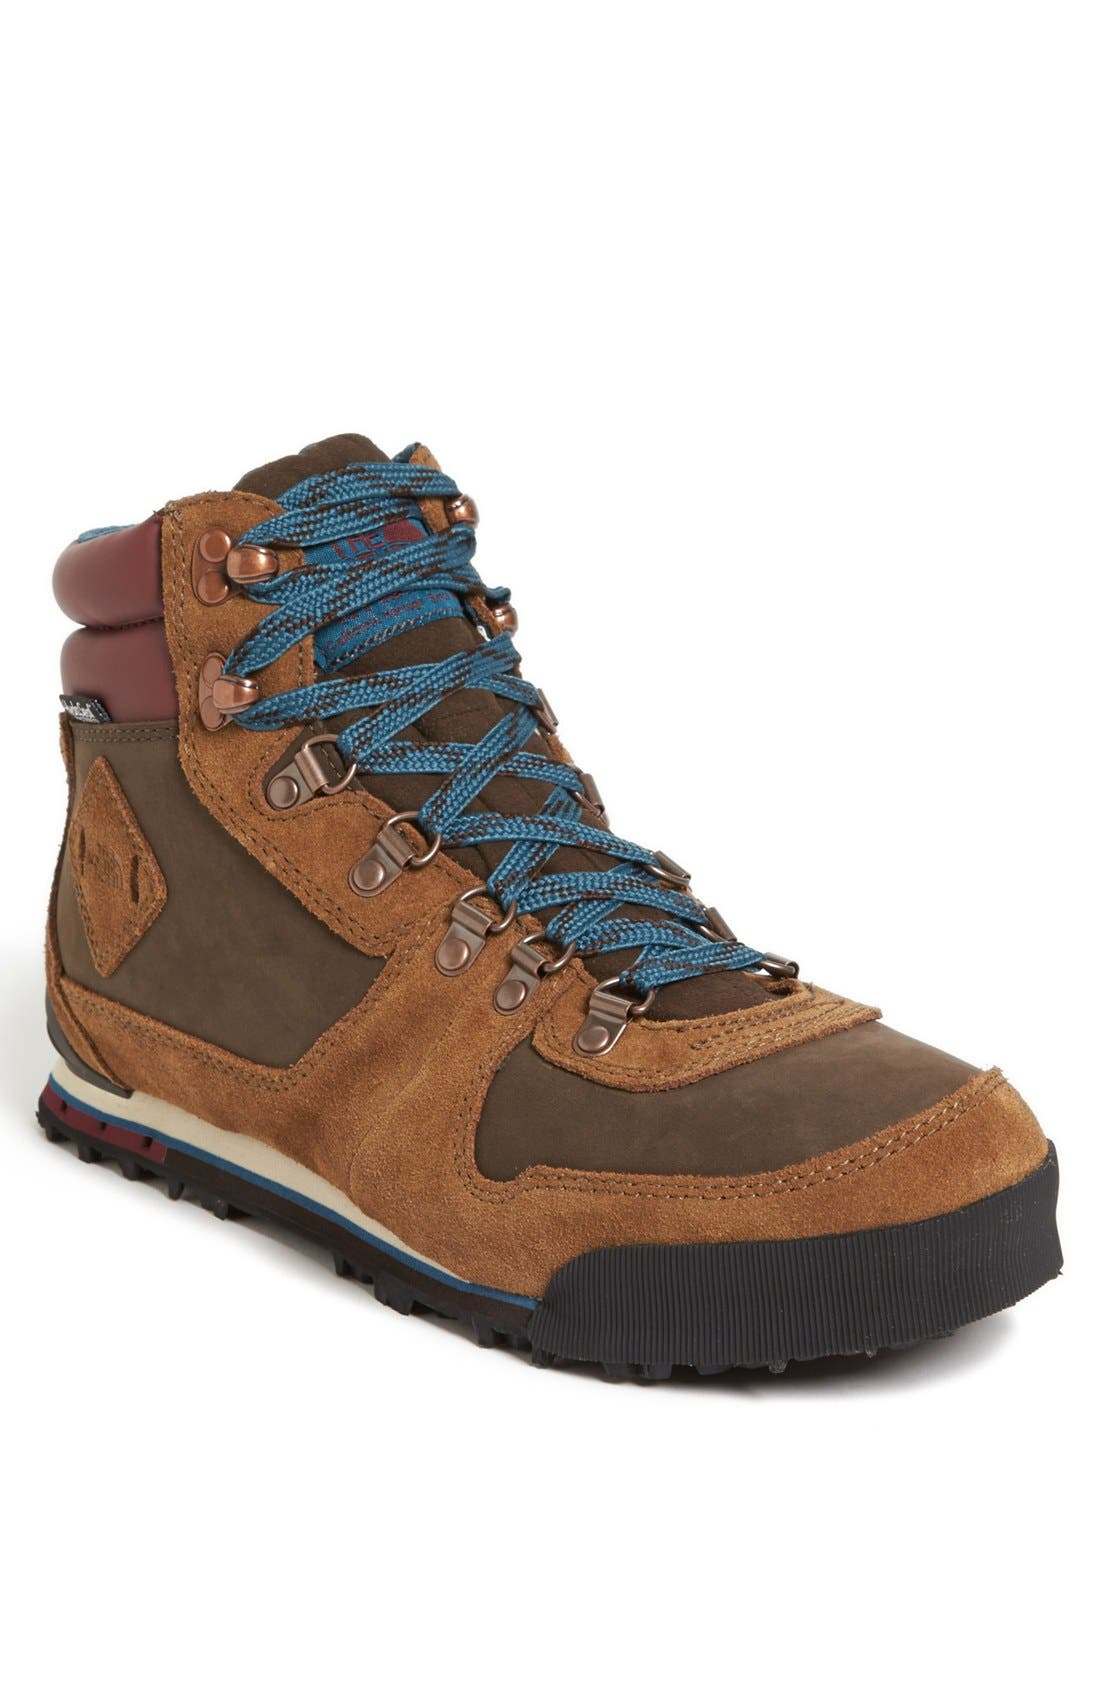 Alternate Image 1 Selected - The North Face 'Back to Berkeley' Boot (Online Exclusive)